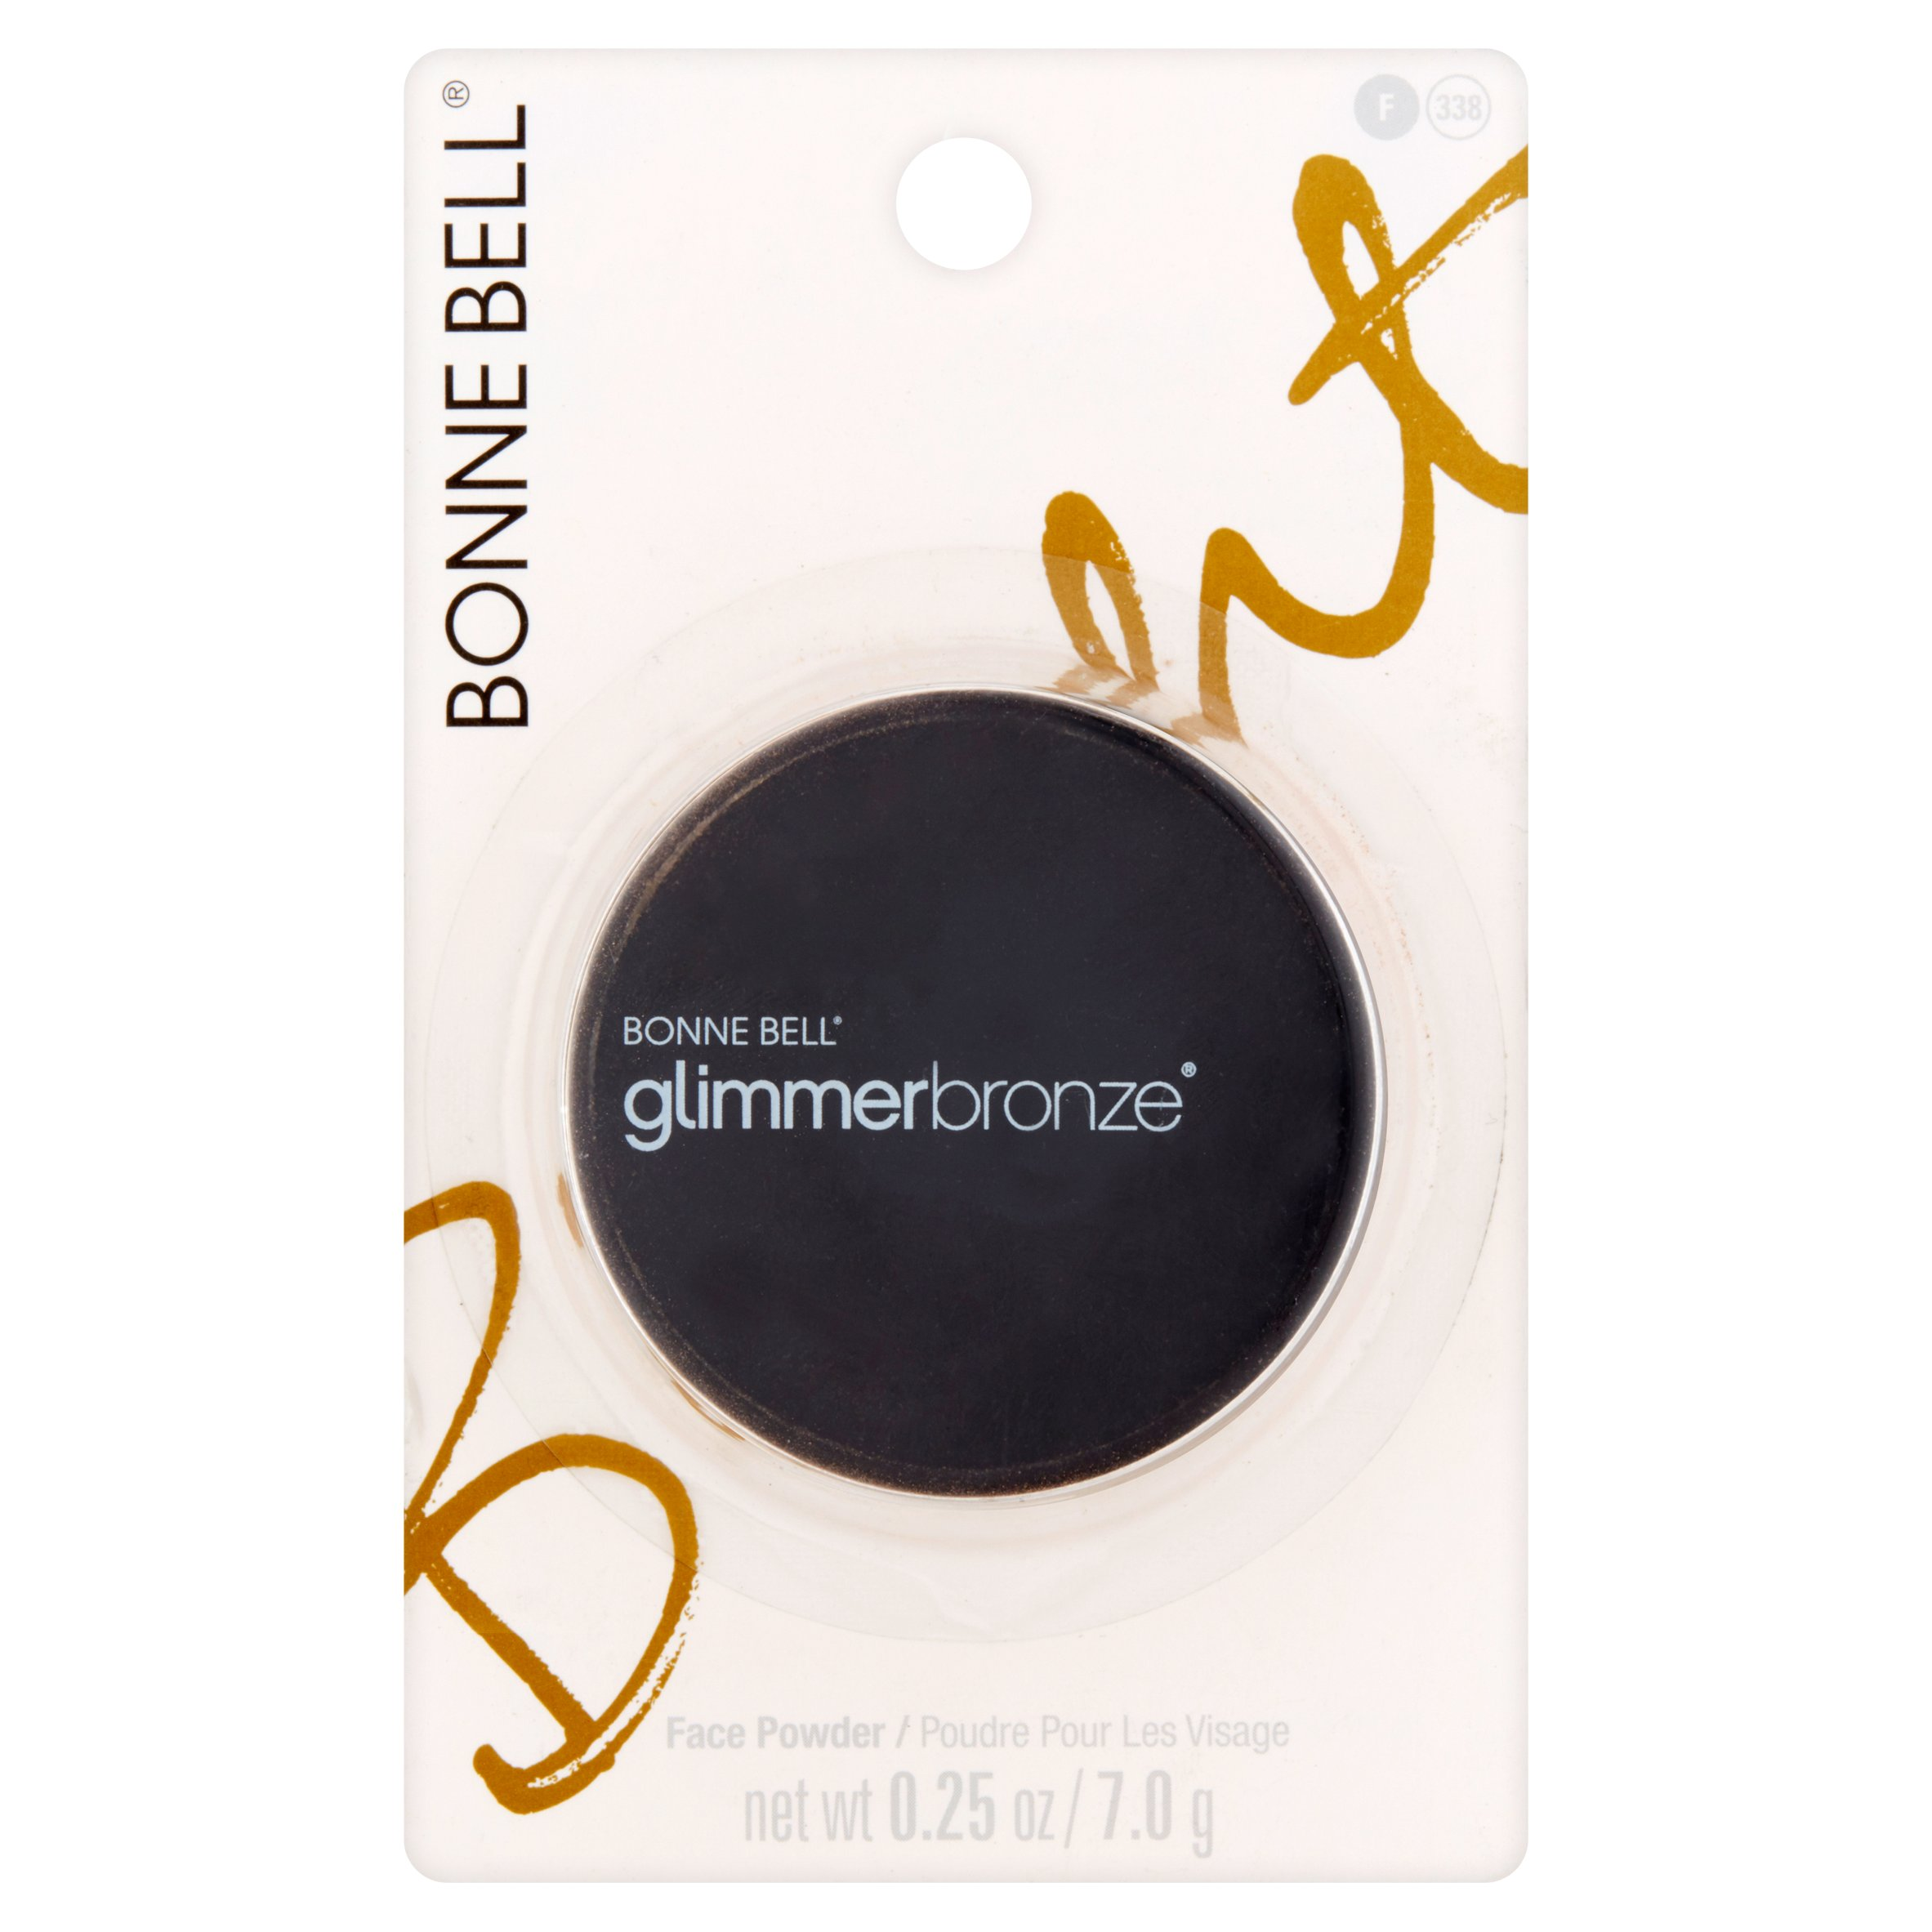 Bonne Bell Glimmerbronze Gold 'N Glitz Face Powder, 0.25 oz